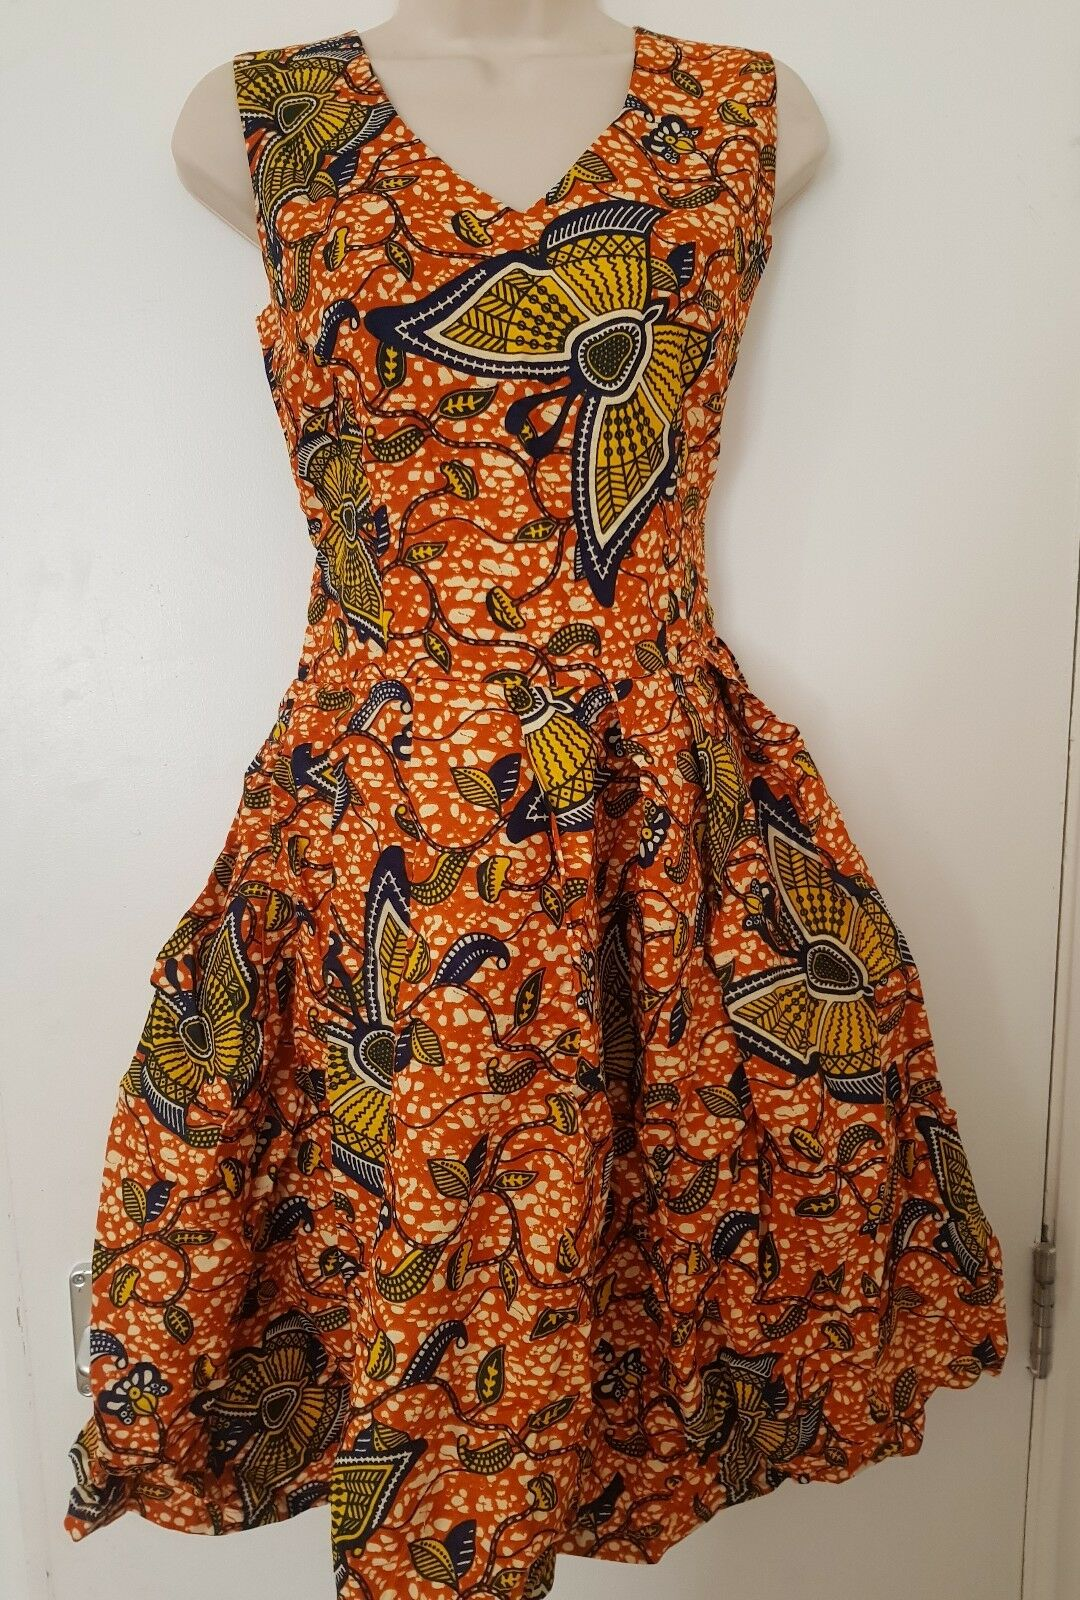 HANDMADE AFRICAN PRINT orange SUN DRESS Size  10, KNEE LENGTH, FREE UK P&P